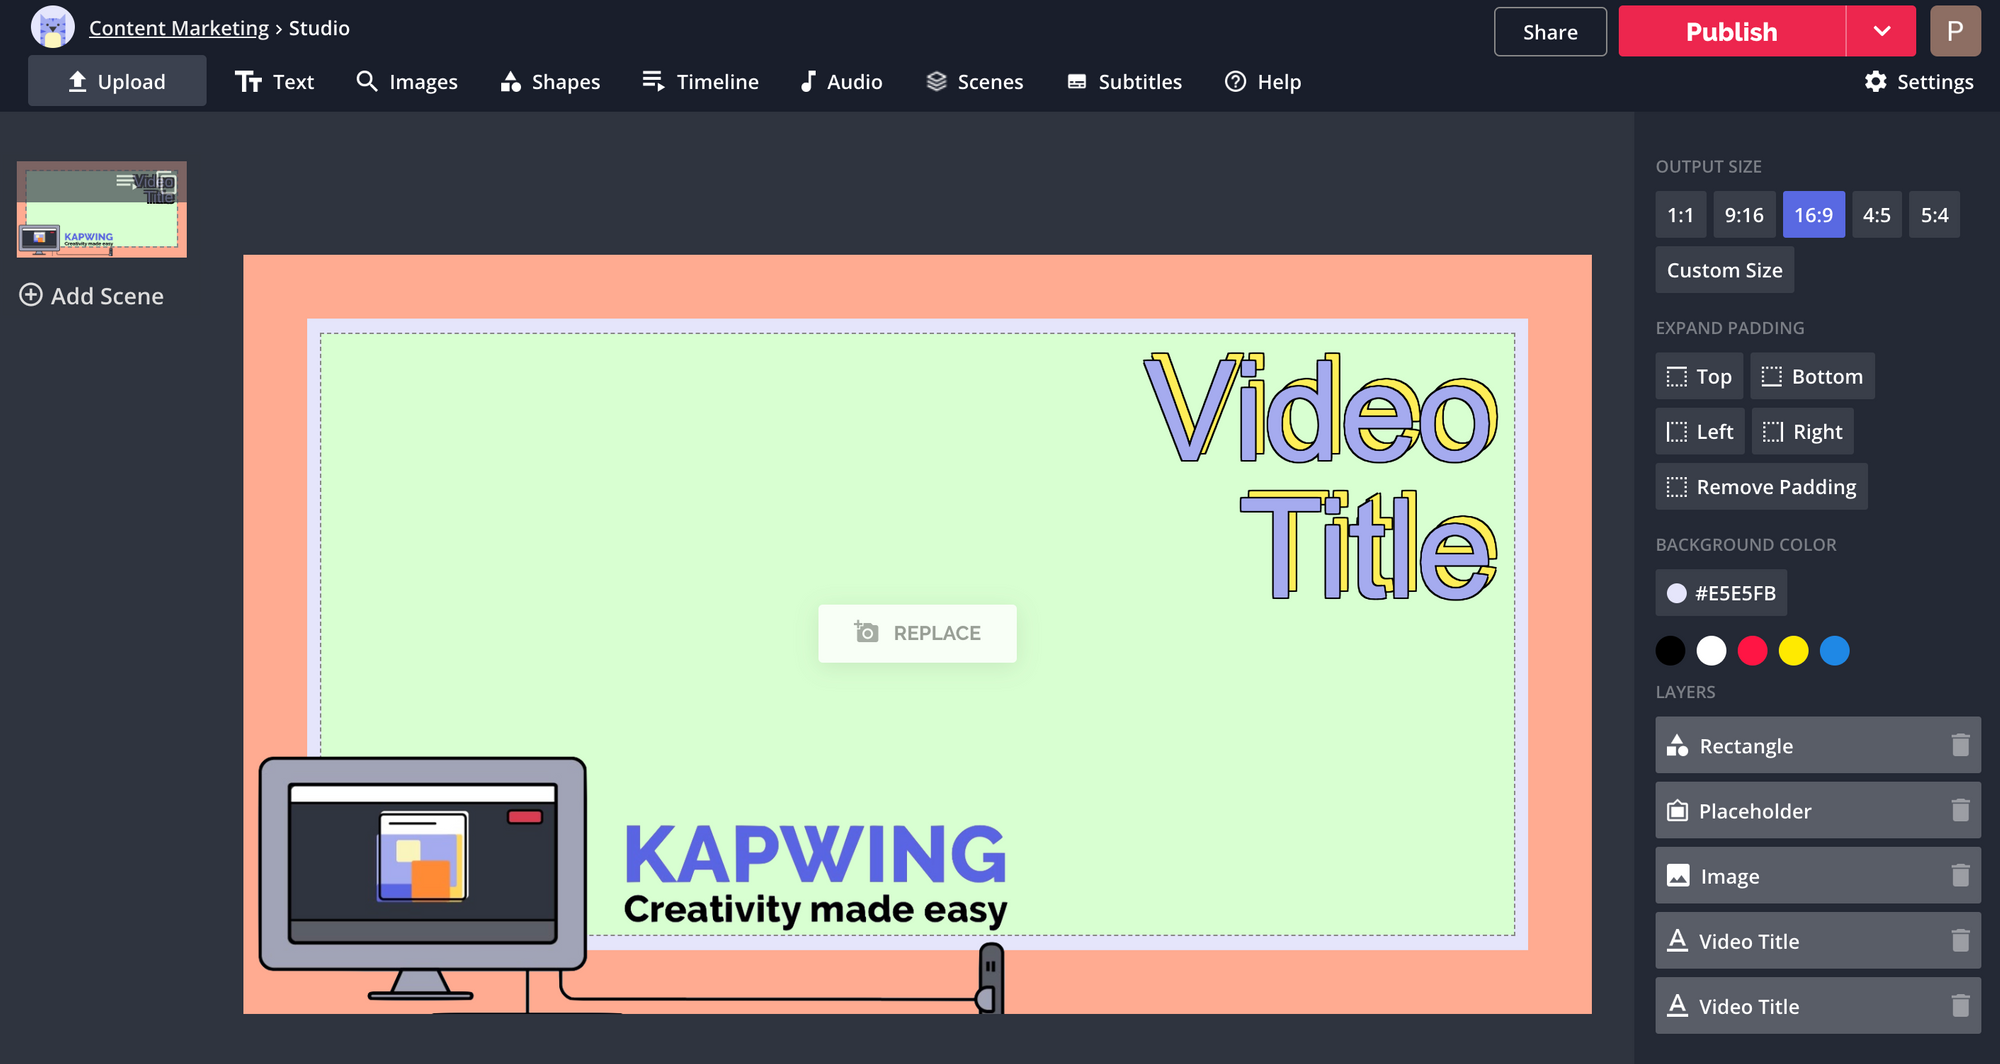 A screenshot showing an editable content template in the Kapwing Studio.